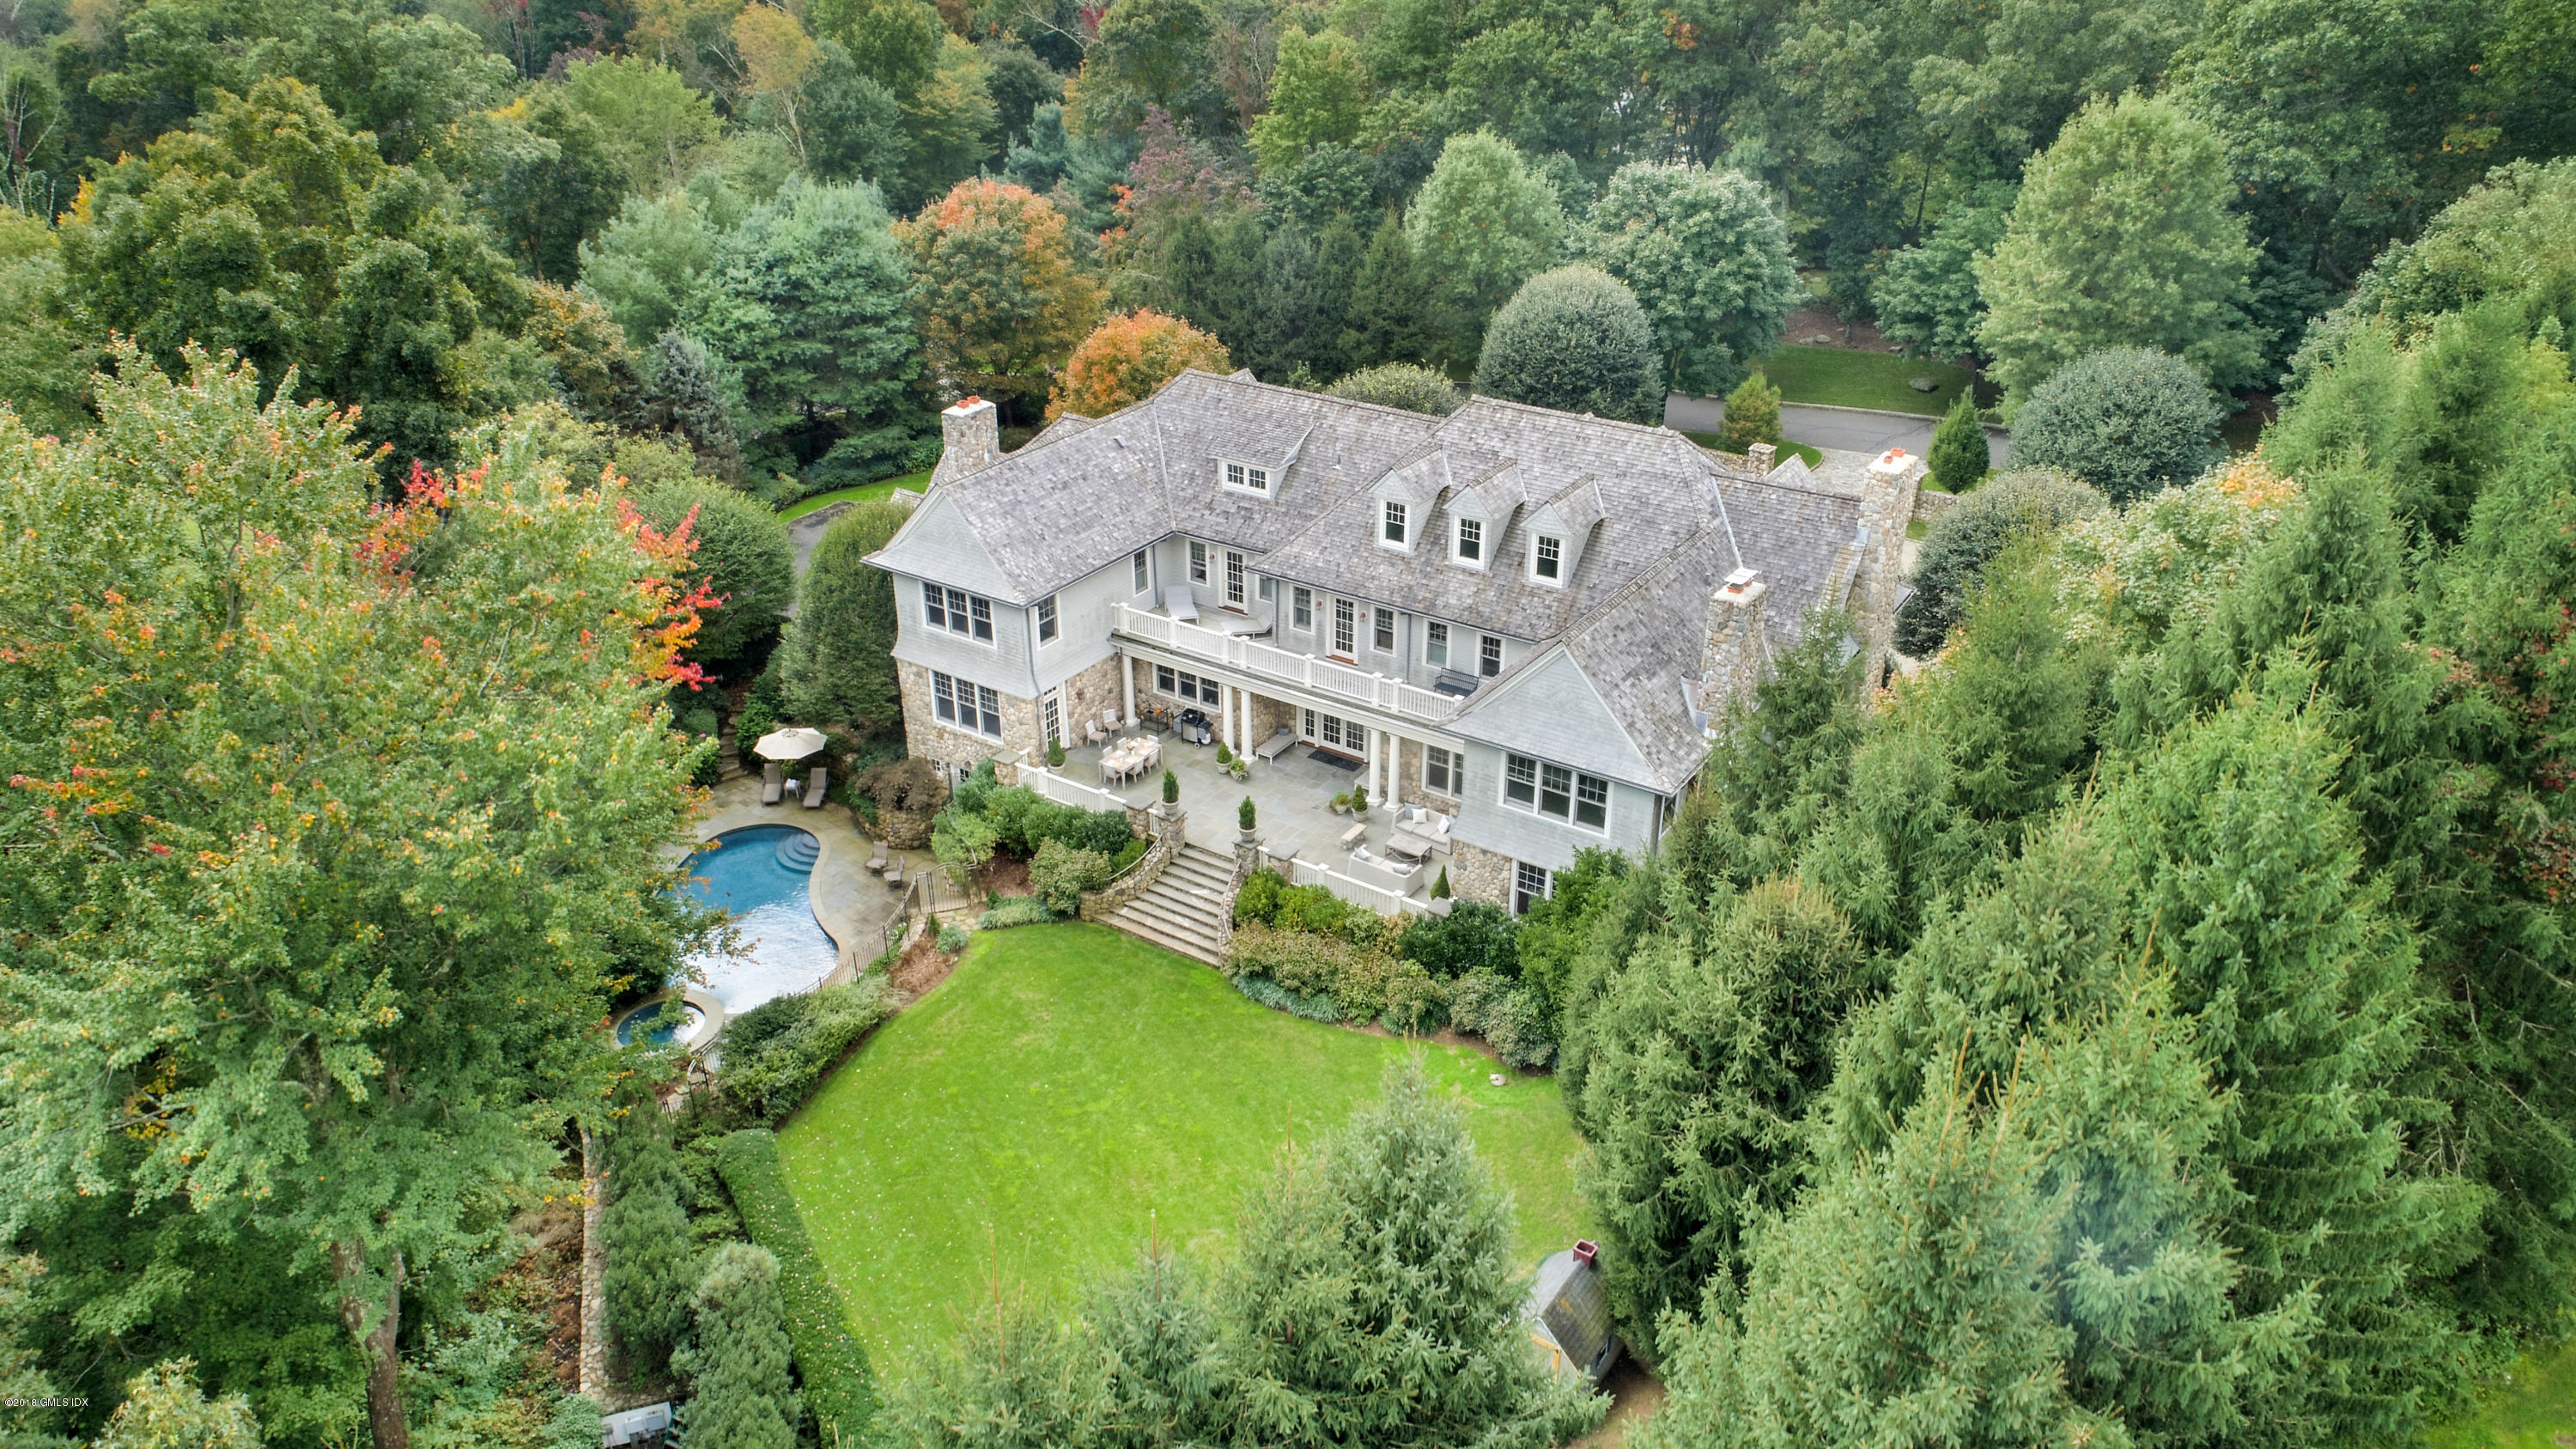 1 Old Round Hill Lane,Greenwich,Connecticut 06831,6 Bedrooms Bedrooms,8 BathroomsBathrooms,Single family,Old Round Hill,104768